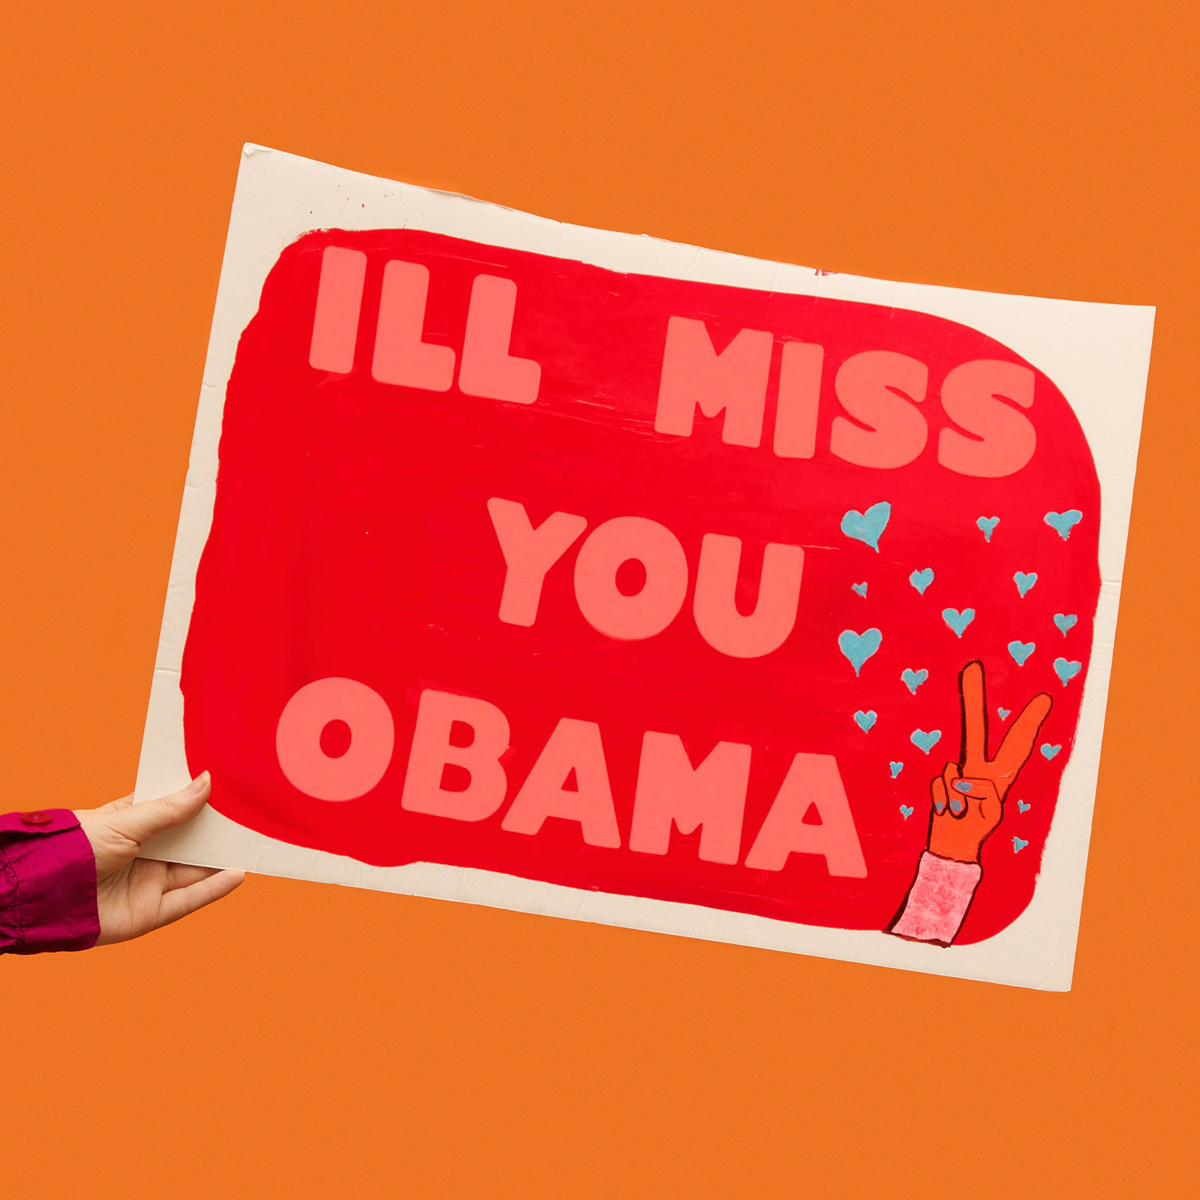 45 Protest Signs_Brandon and Olivia Locher_26_IllMissYouObama